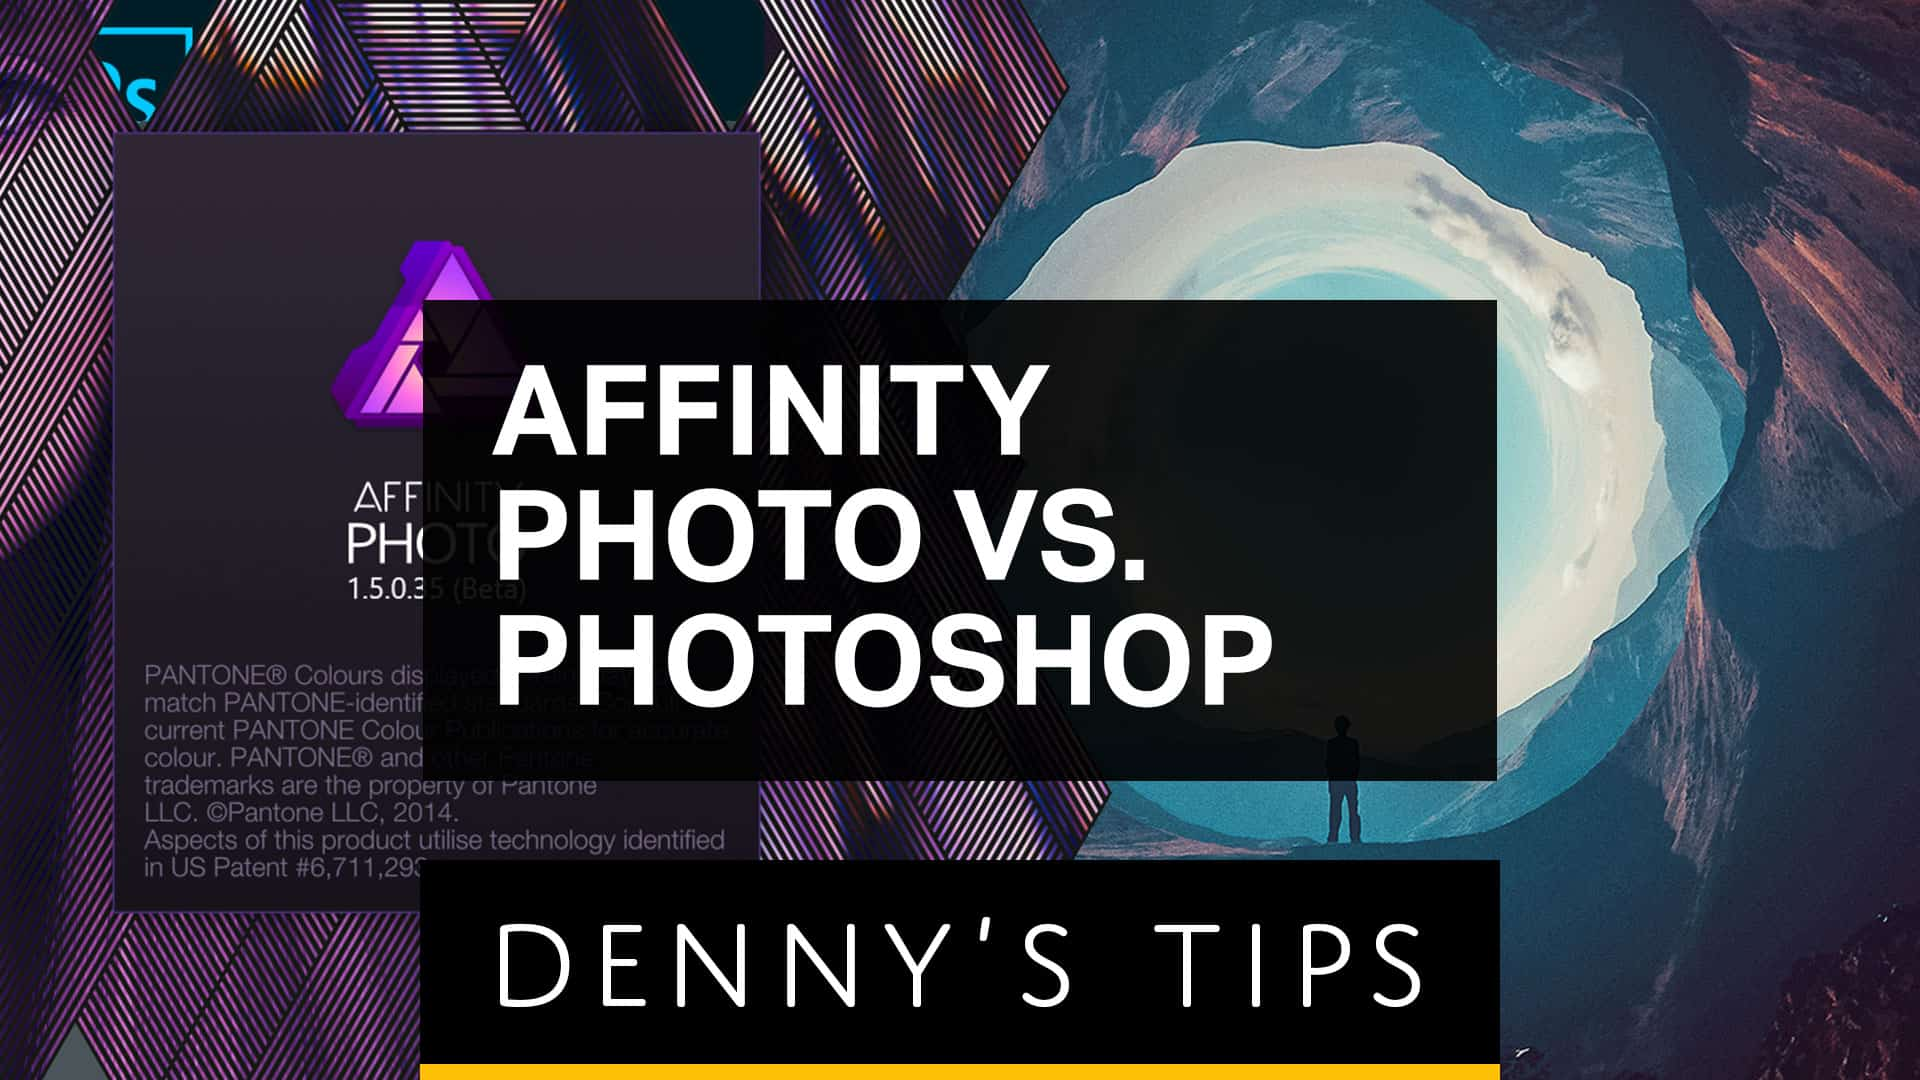 Affinity Photo vs Photoshop - Worth the Switch? - Photoshop